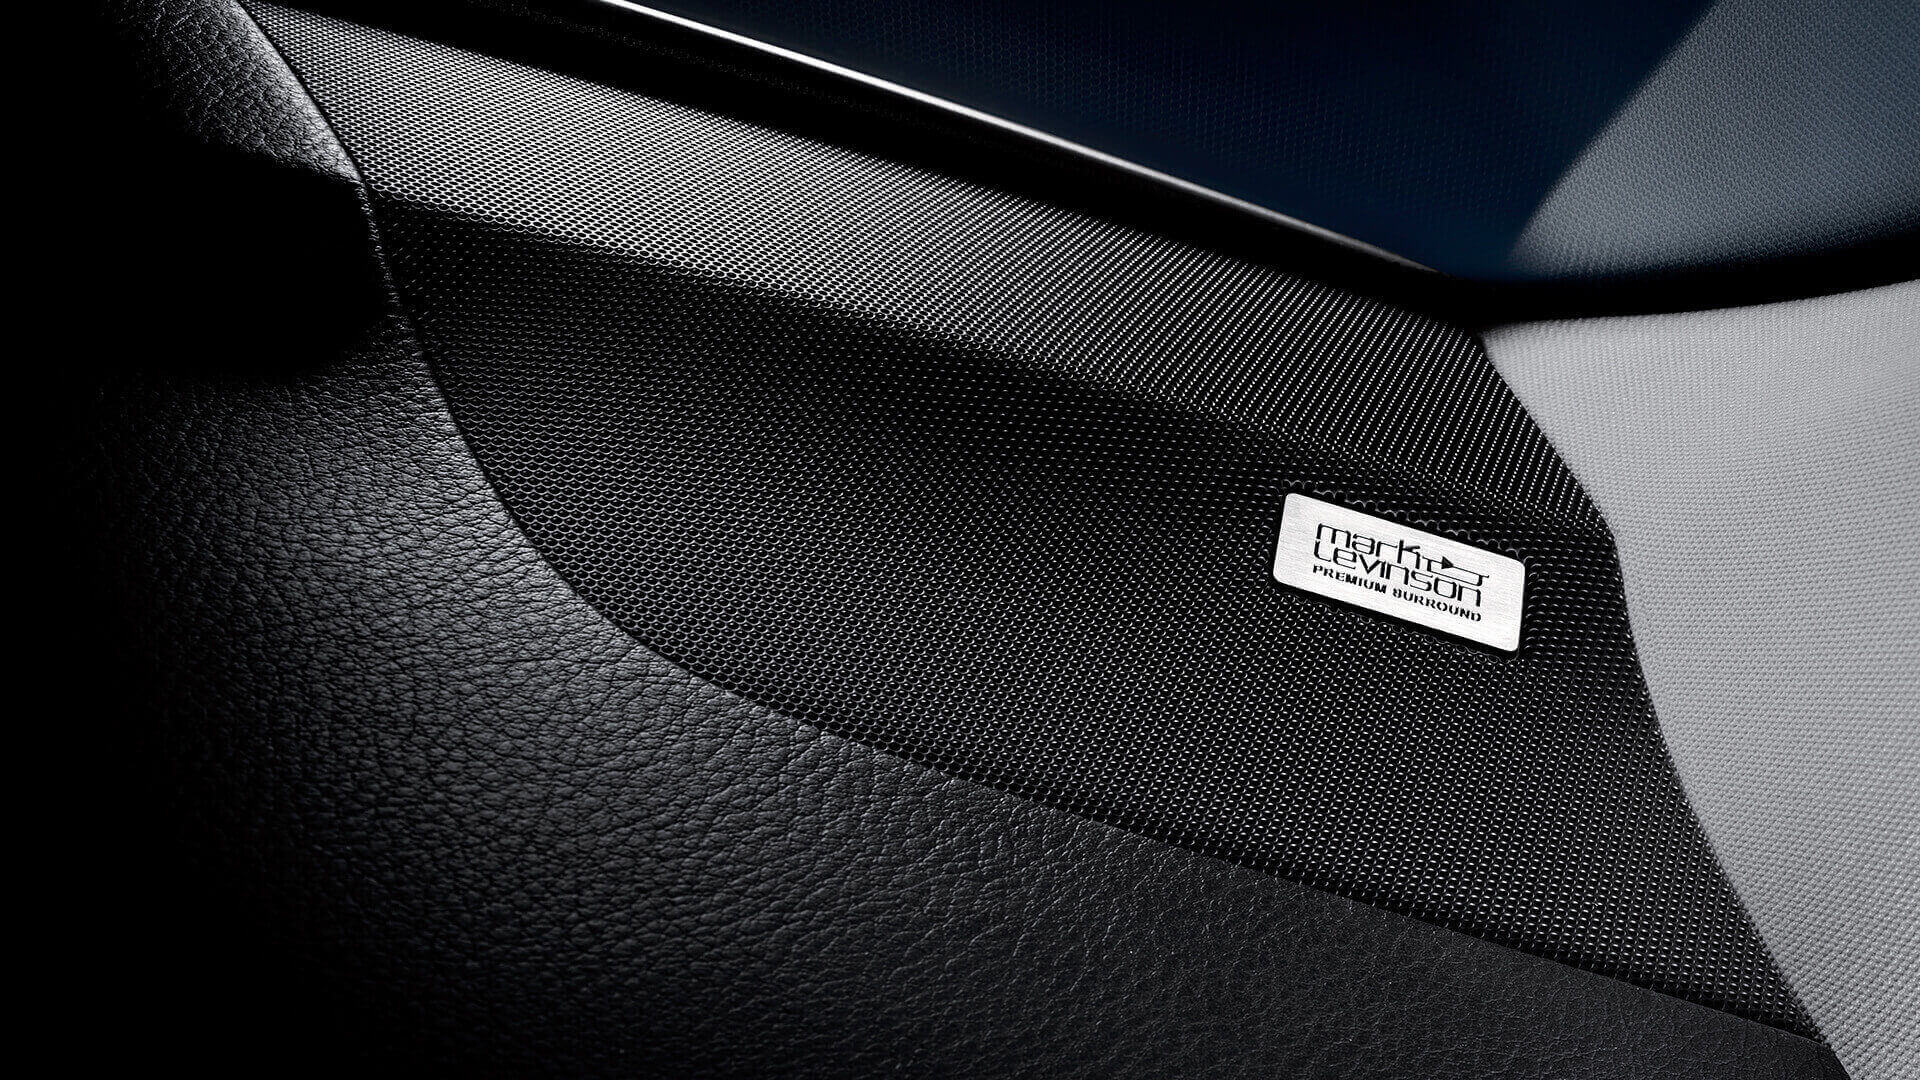 2020 lexus nx hotspot 14 speaker mark levinson sound